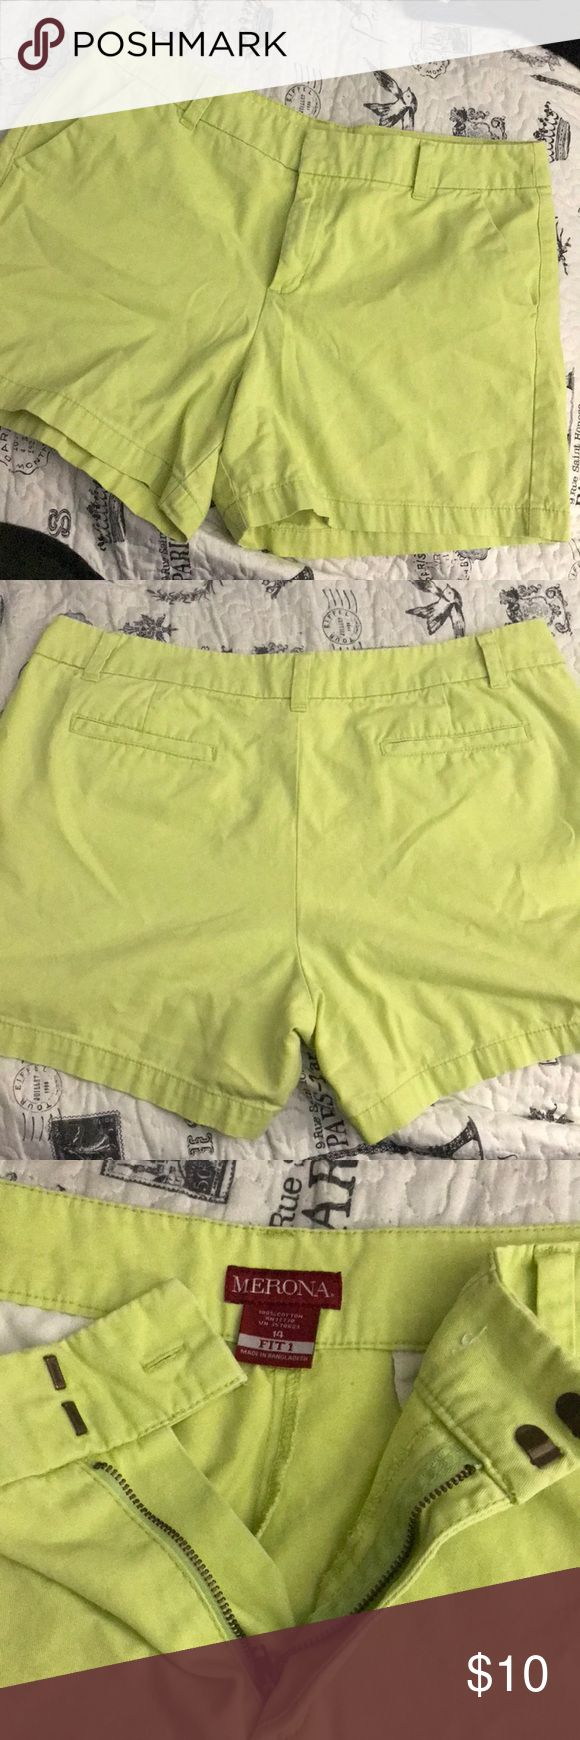 Neon Lime Green Shorts Merona brand shorts. Hardly used. Zipper and clasps in very good condition. As shown in the picture, the inner button inside is missing. Lost it in the washing machine. Oopsie. Back pockets are just for design, you can't put your hands in but there are two front pockets which are large. Merona Shorts